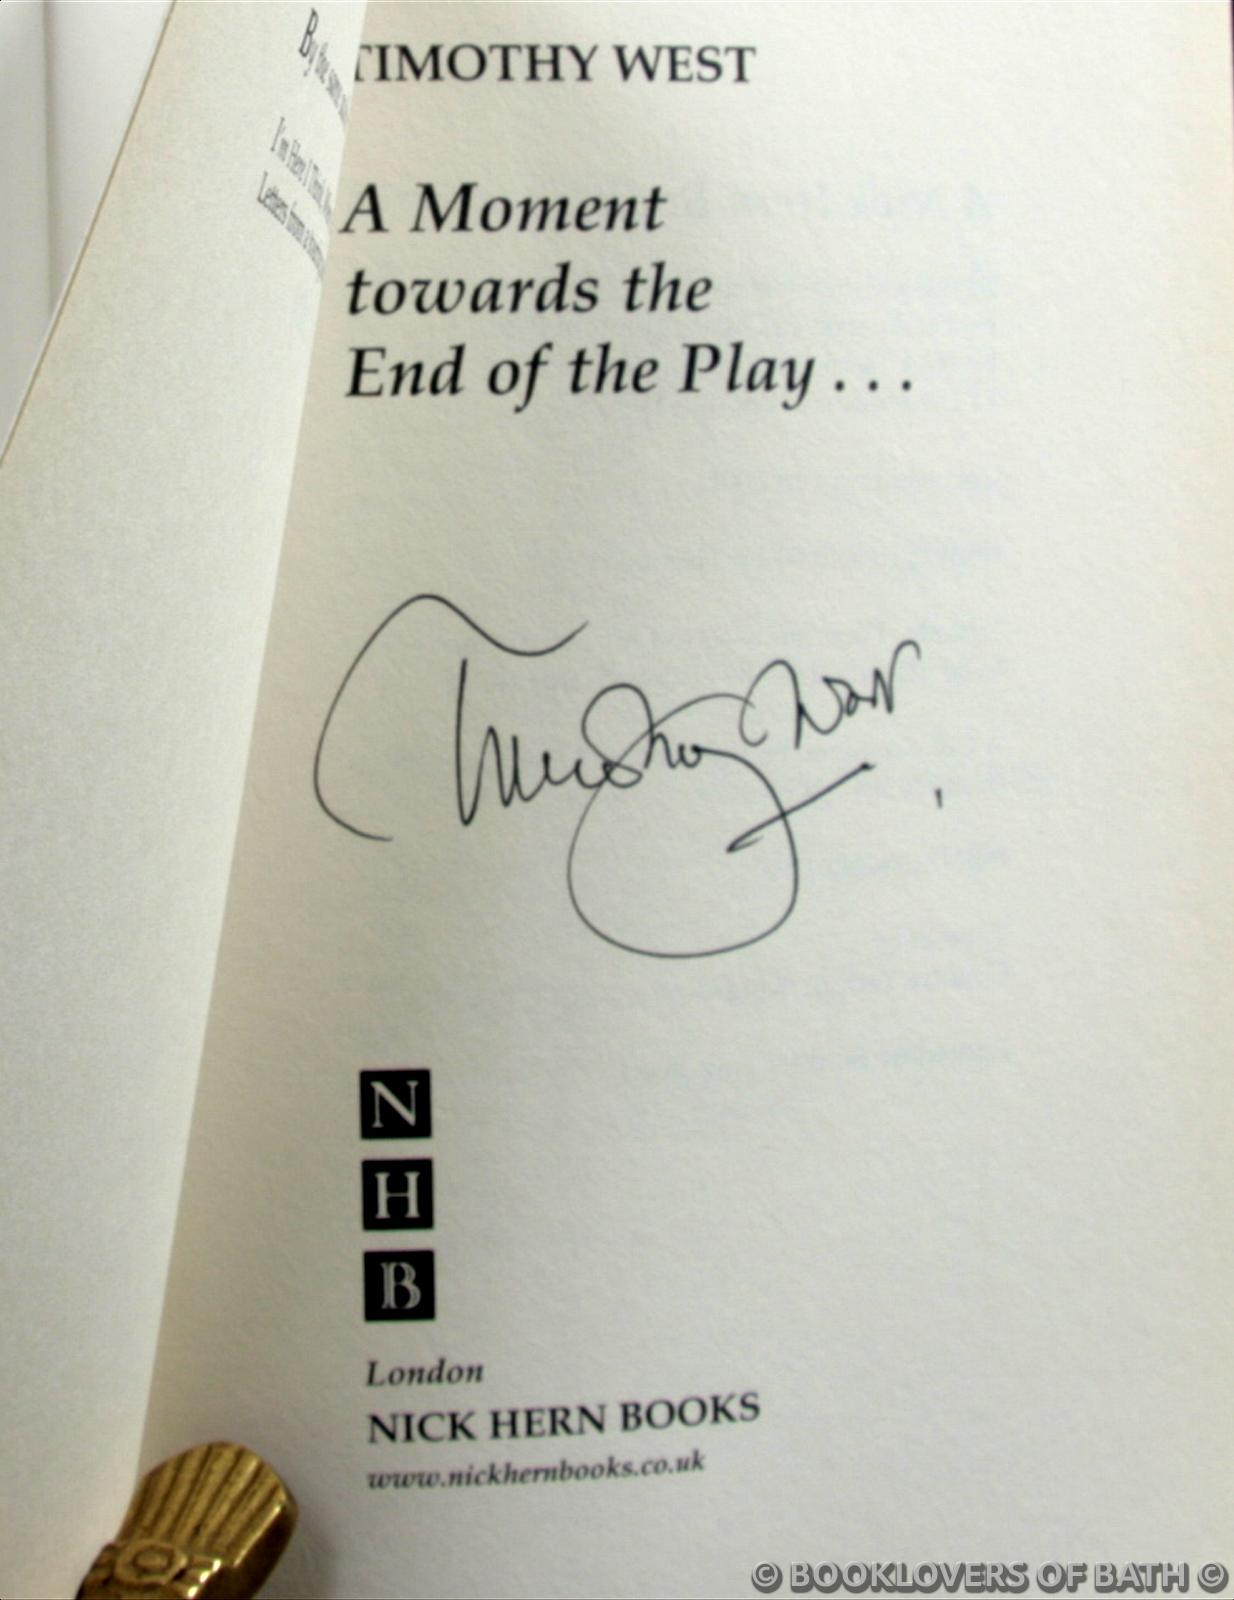 A Moment Towards the End of the Play Timothy West